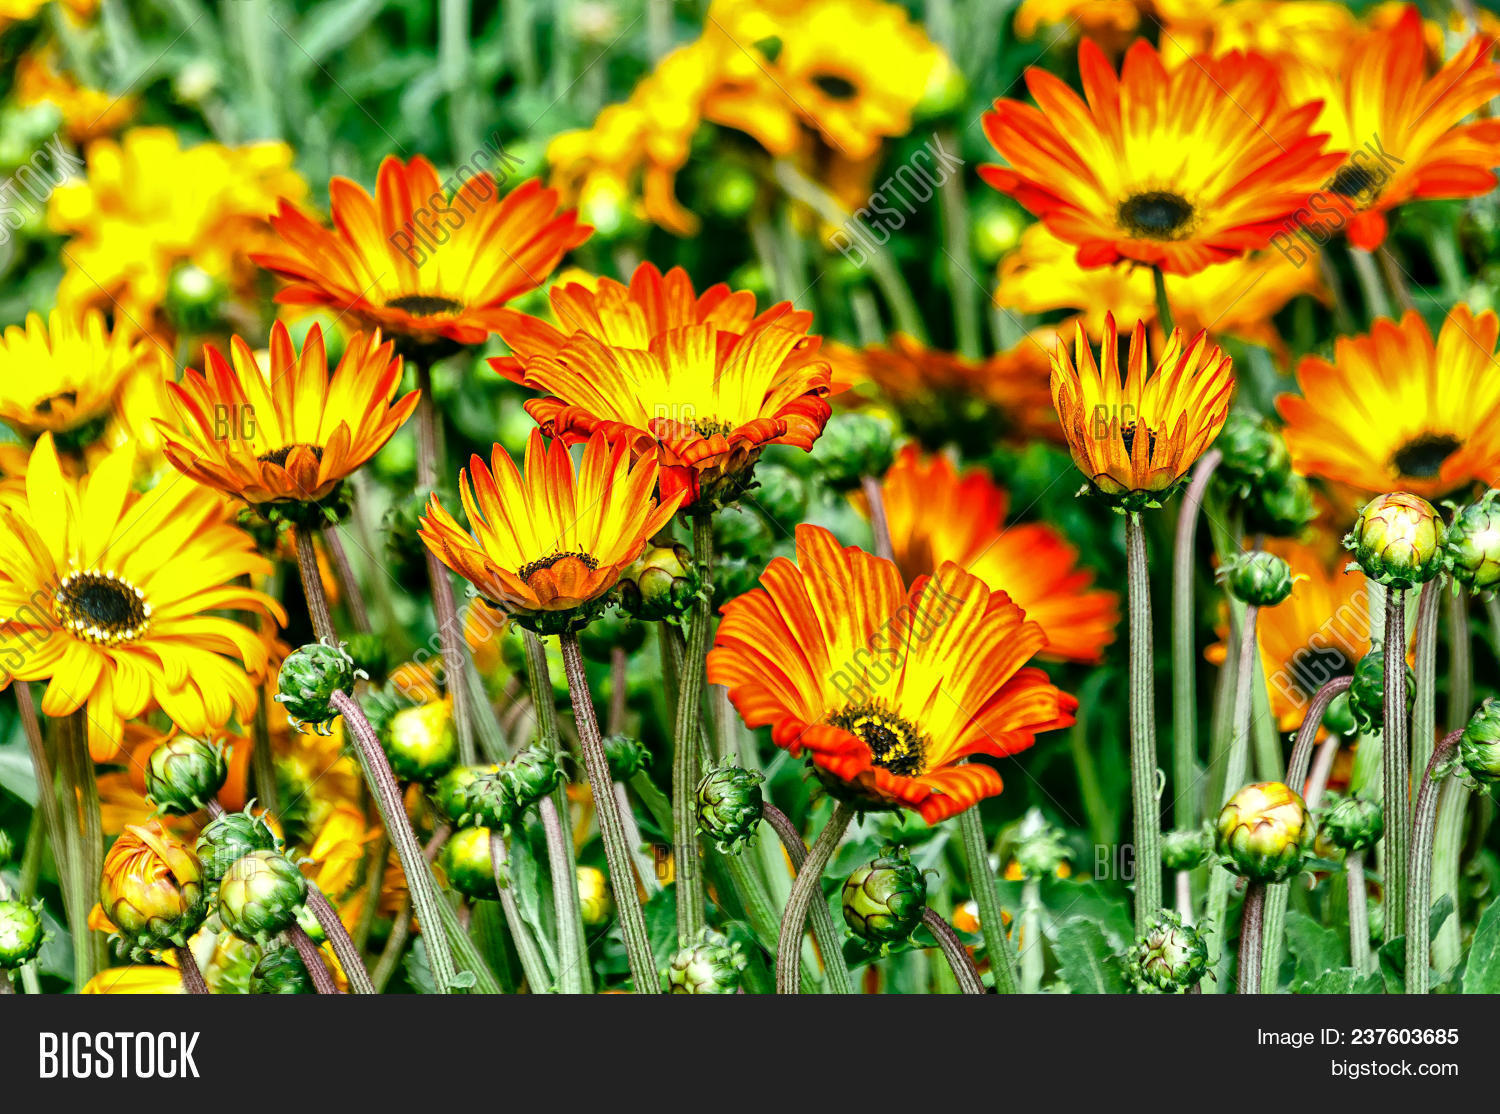 African Daisies Image Photo Free Trial Bigstock